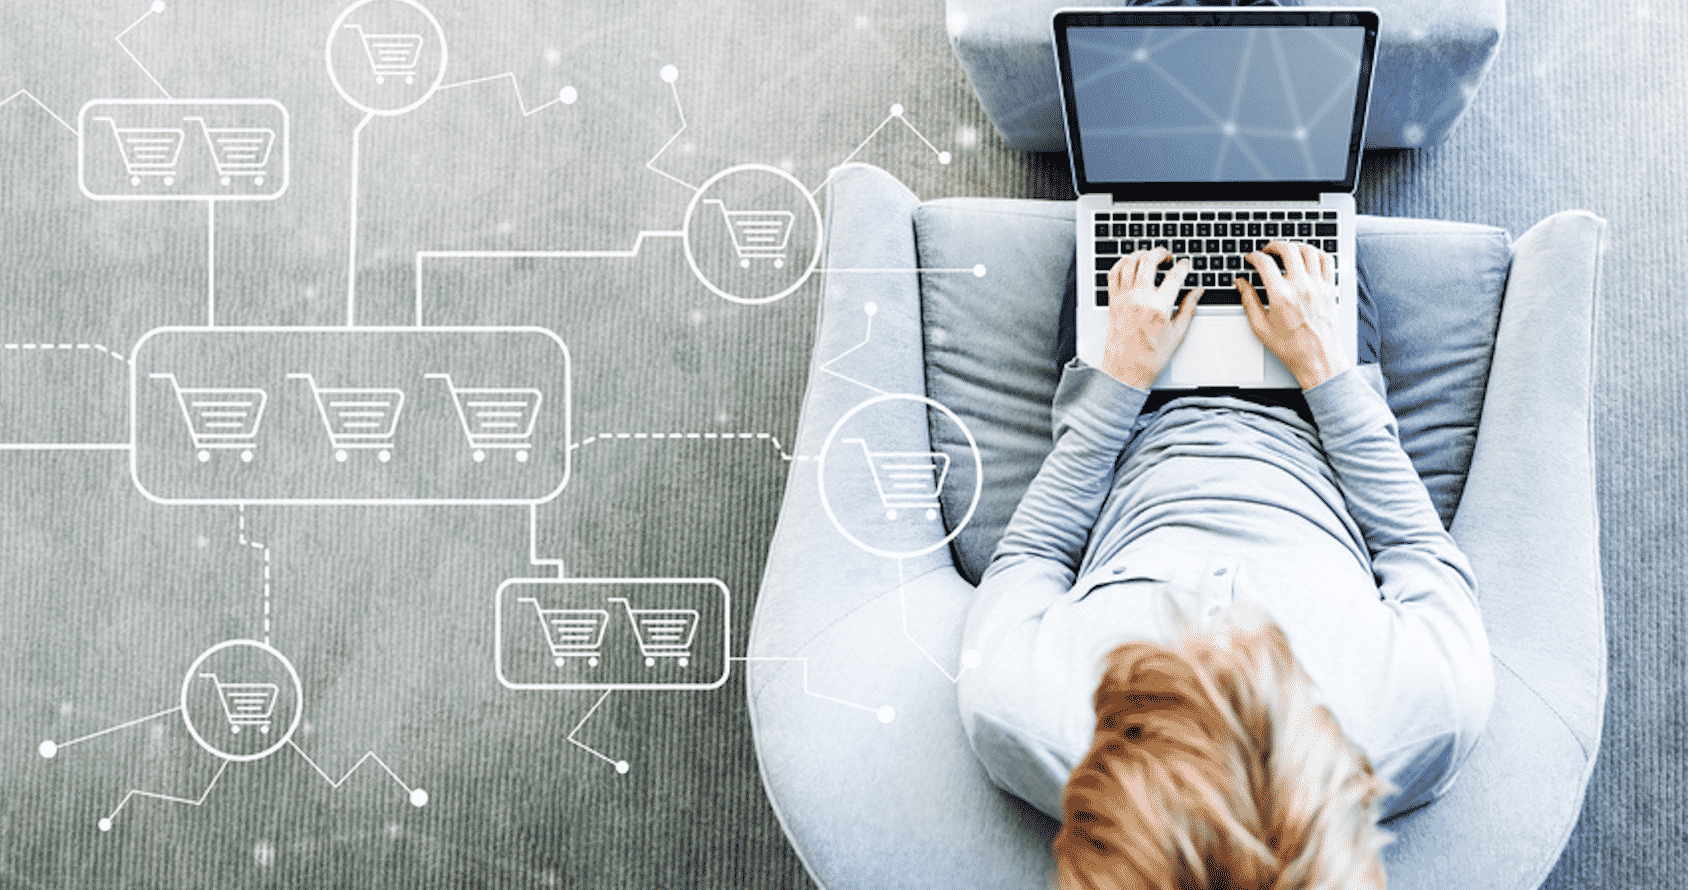 How Online Grocery Shopping is Doing in the E-commerce Industry